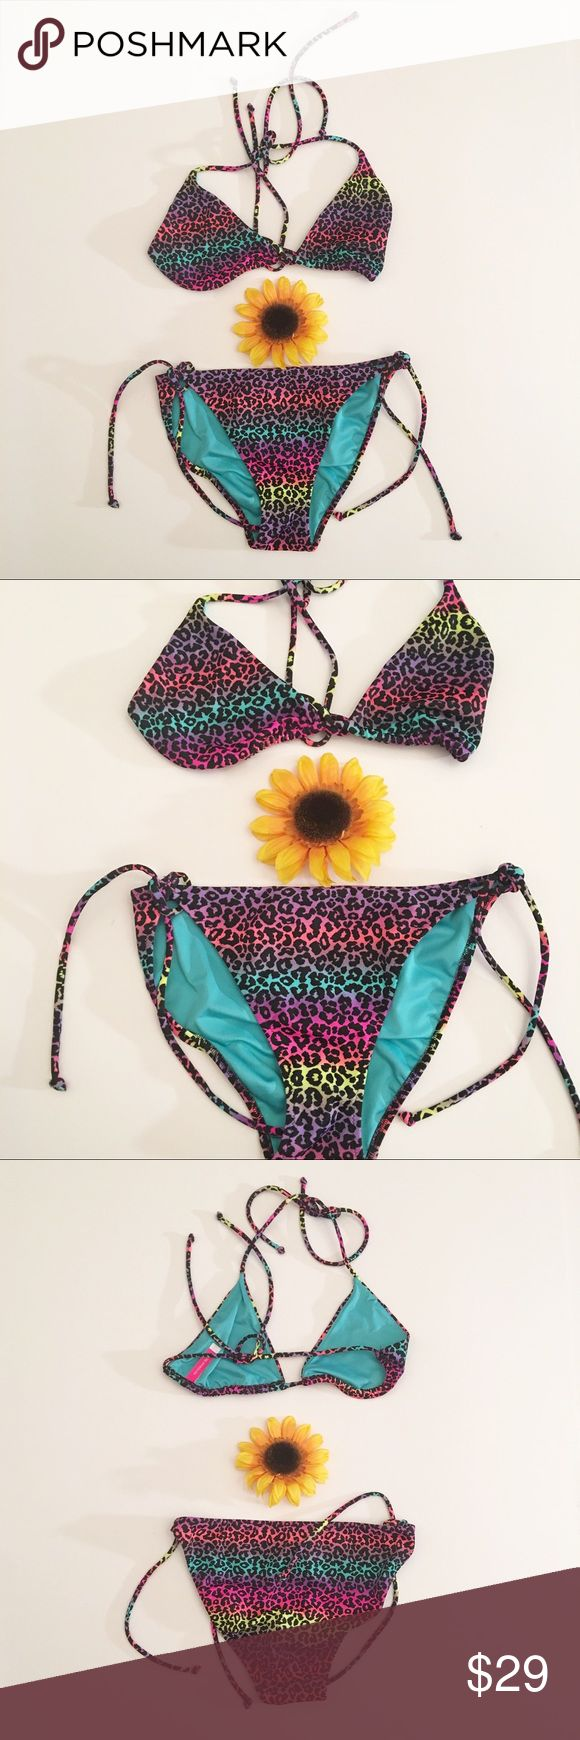 Rainbow leopard print Victoria's Secret bikini, M Very good used condition VS bikini set in a size medium. Very pretty rainbow colored animal print. I washed the suit thoroughly before listening. Victoria's Secret Swim Bikinis